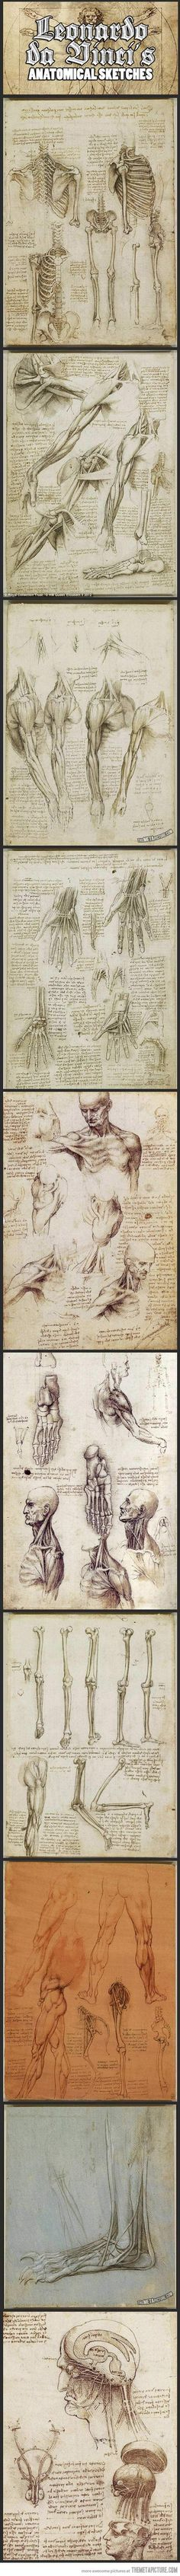 Leonardo da Vinci's anatomical sketches…